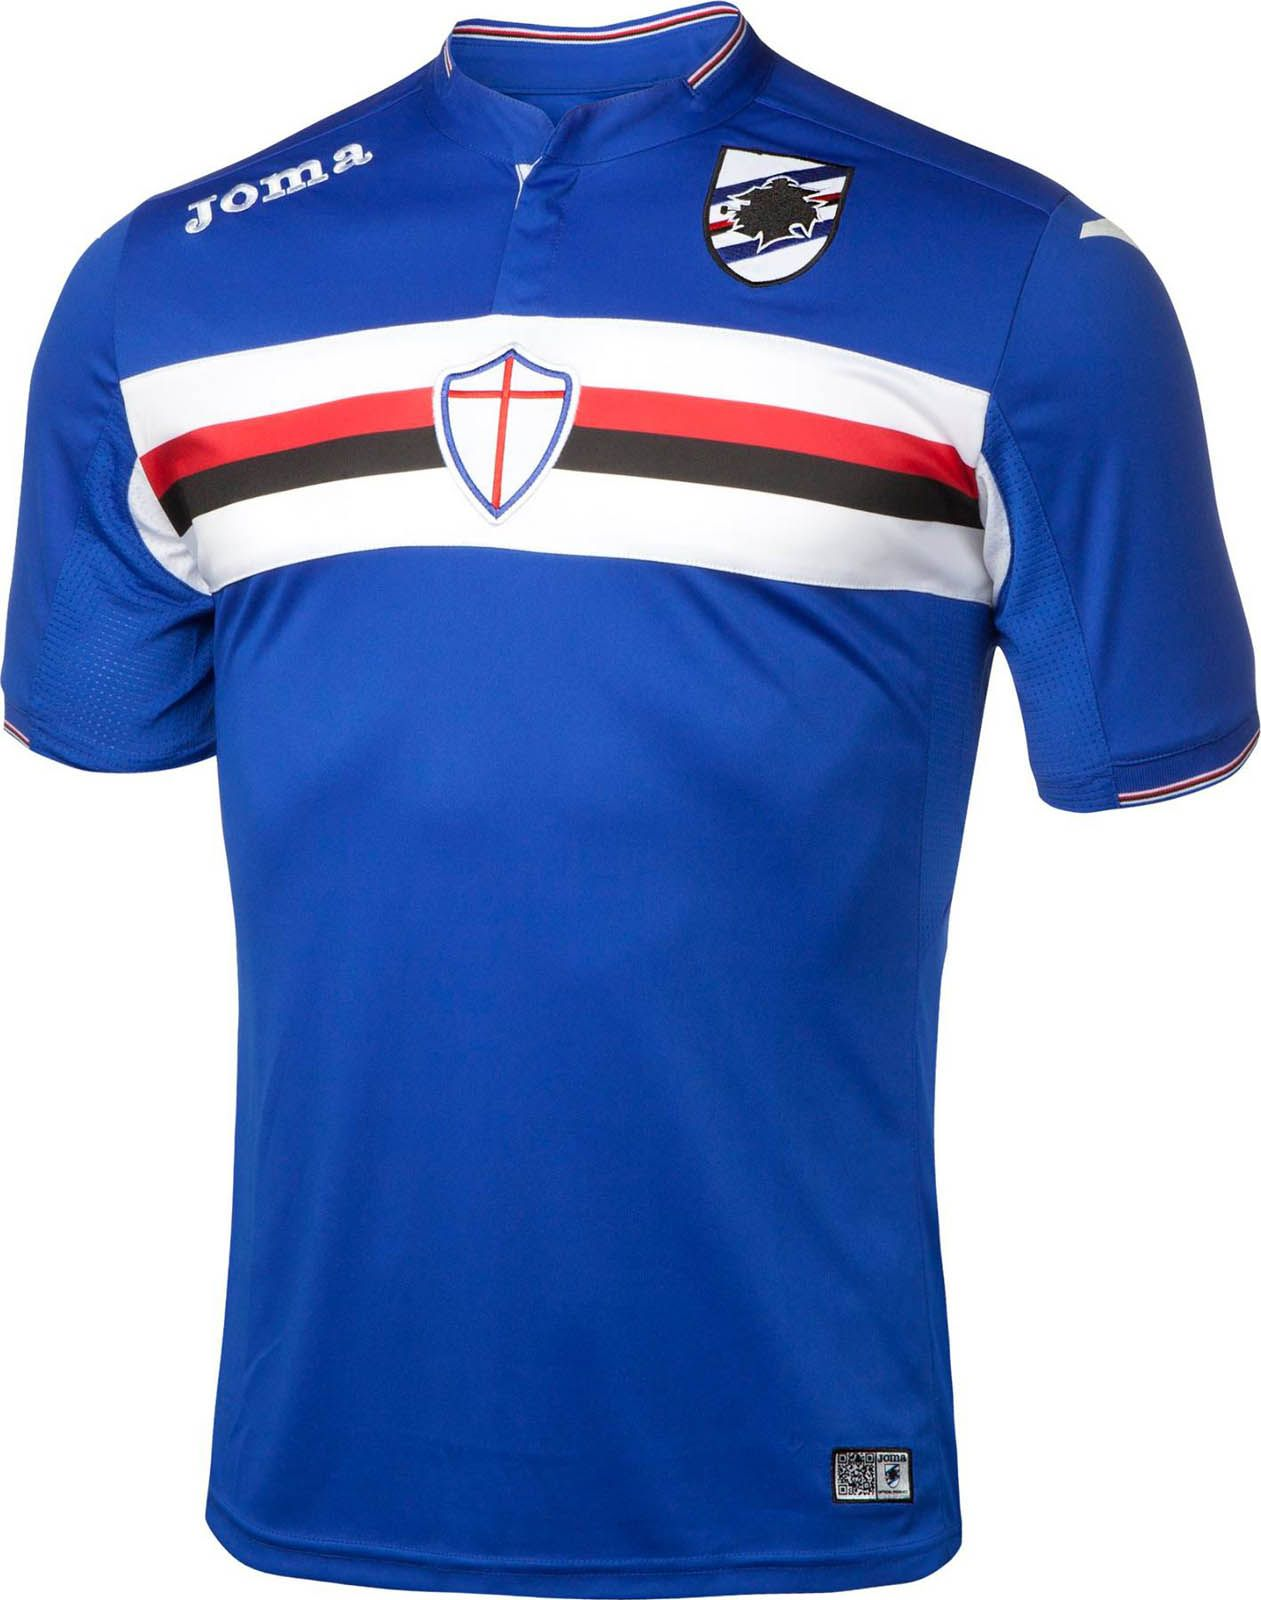 UC Sampdoria (Italy) - 2015/2016 Joma Home Shirt